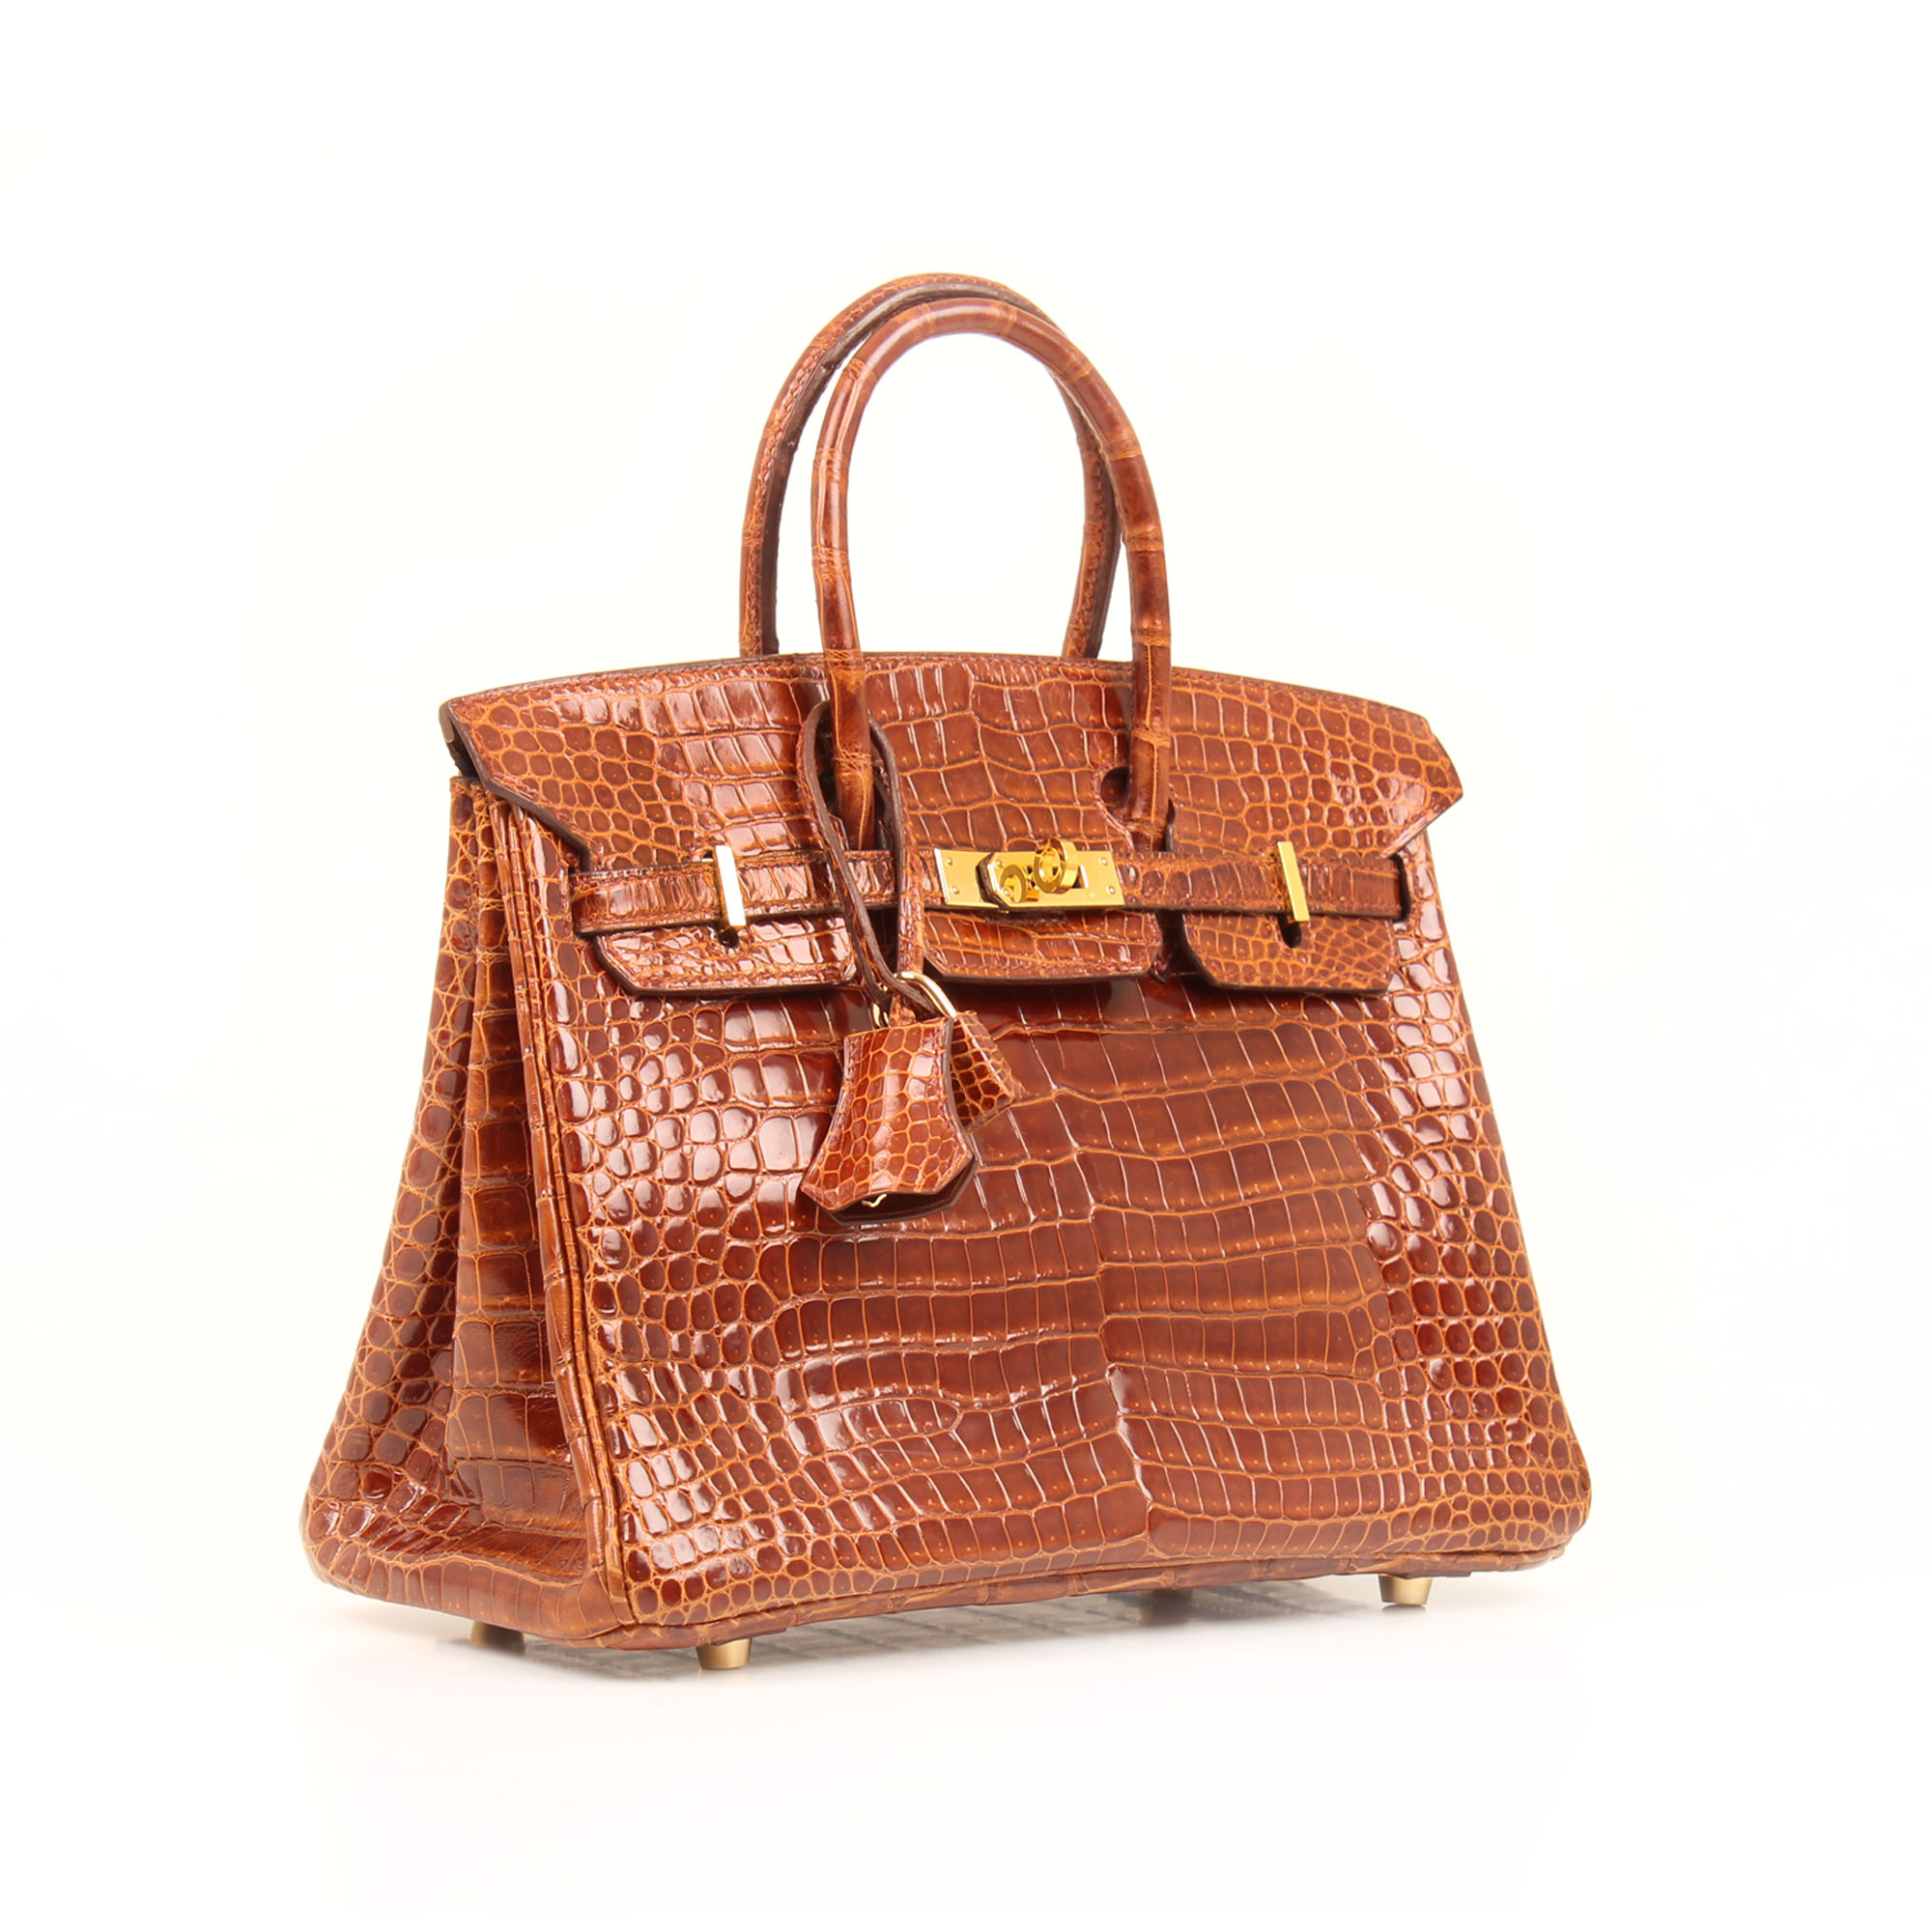 General image of hermes birkin 25 poroso soft whisky bag